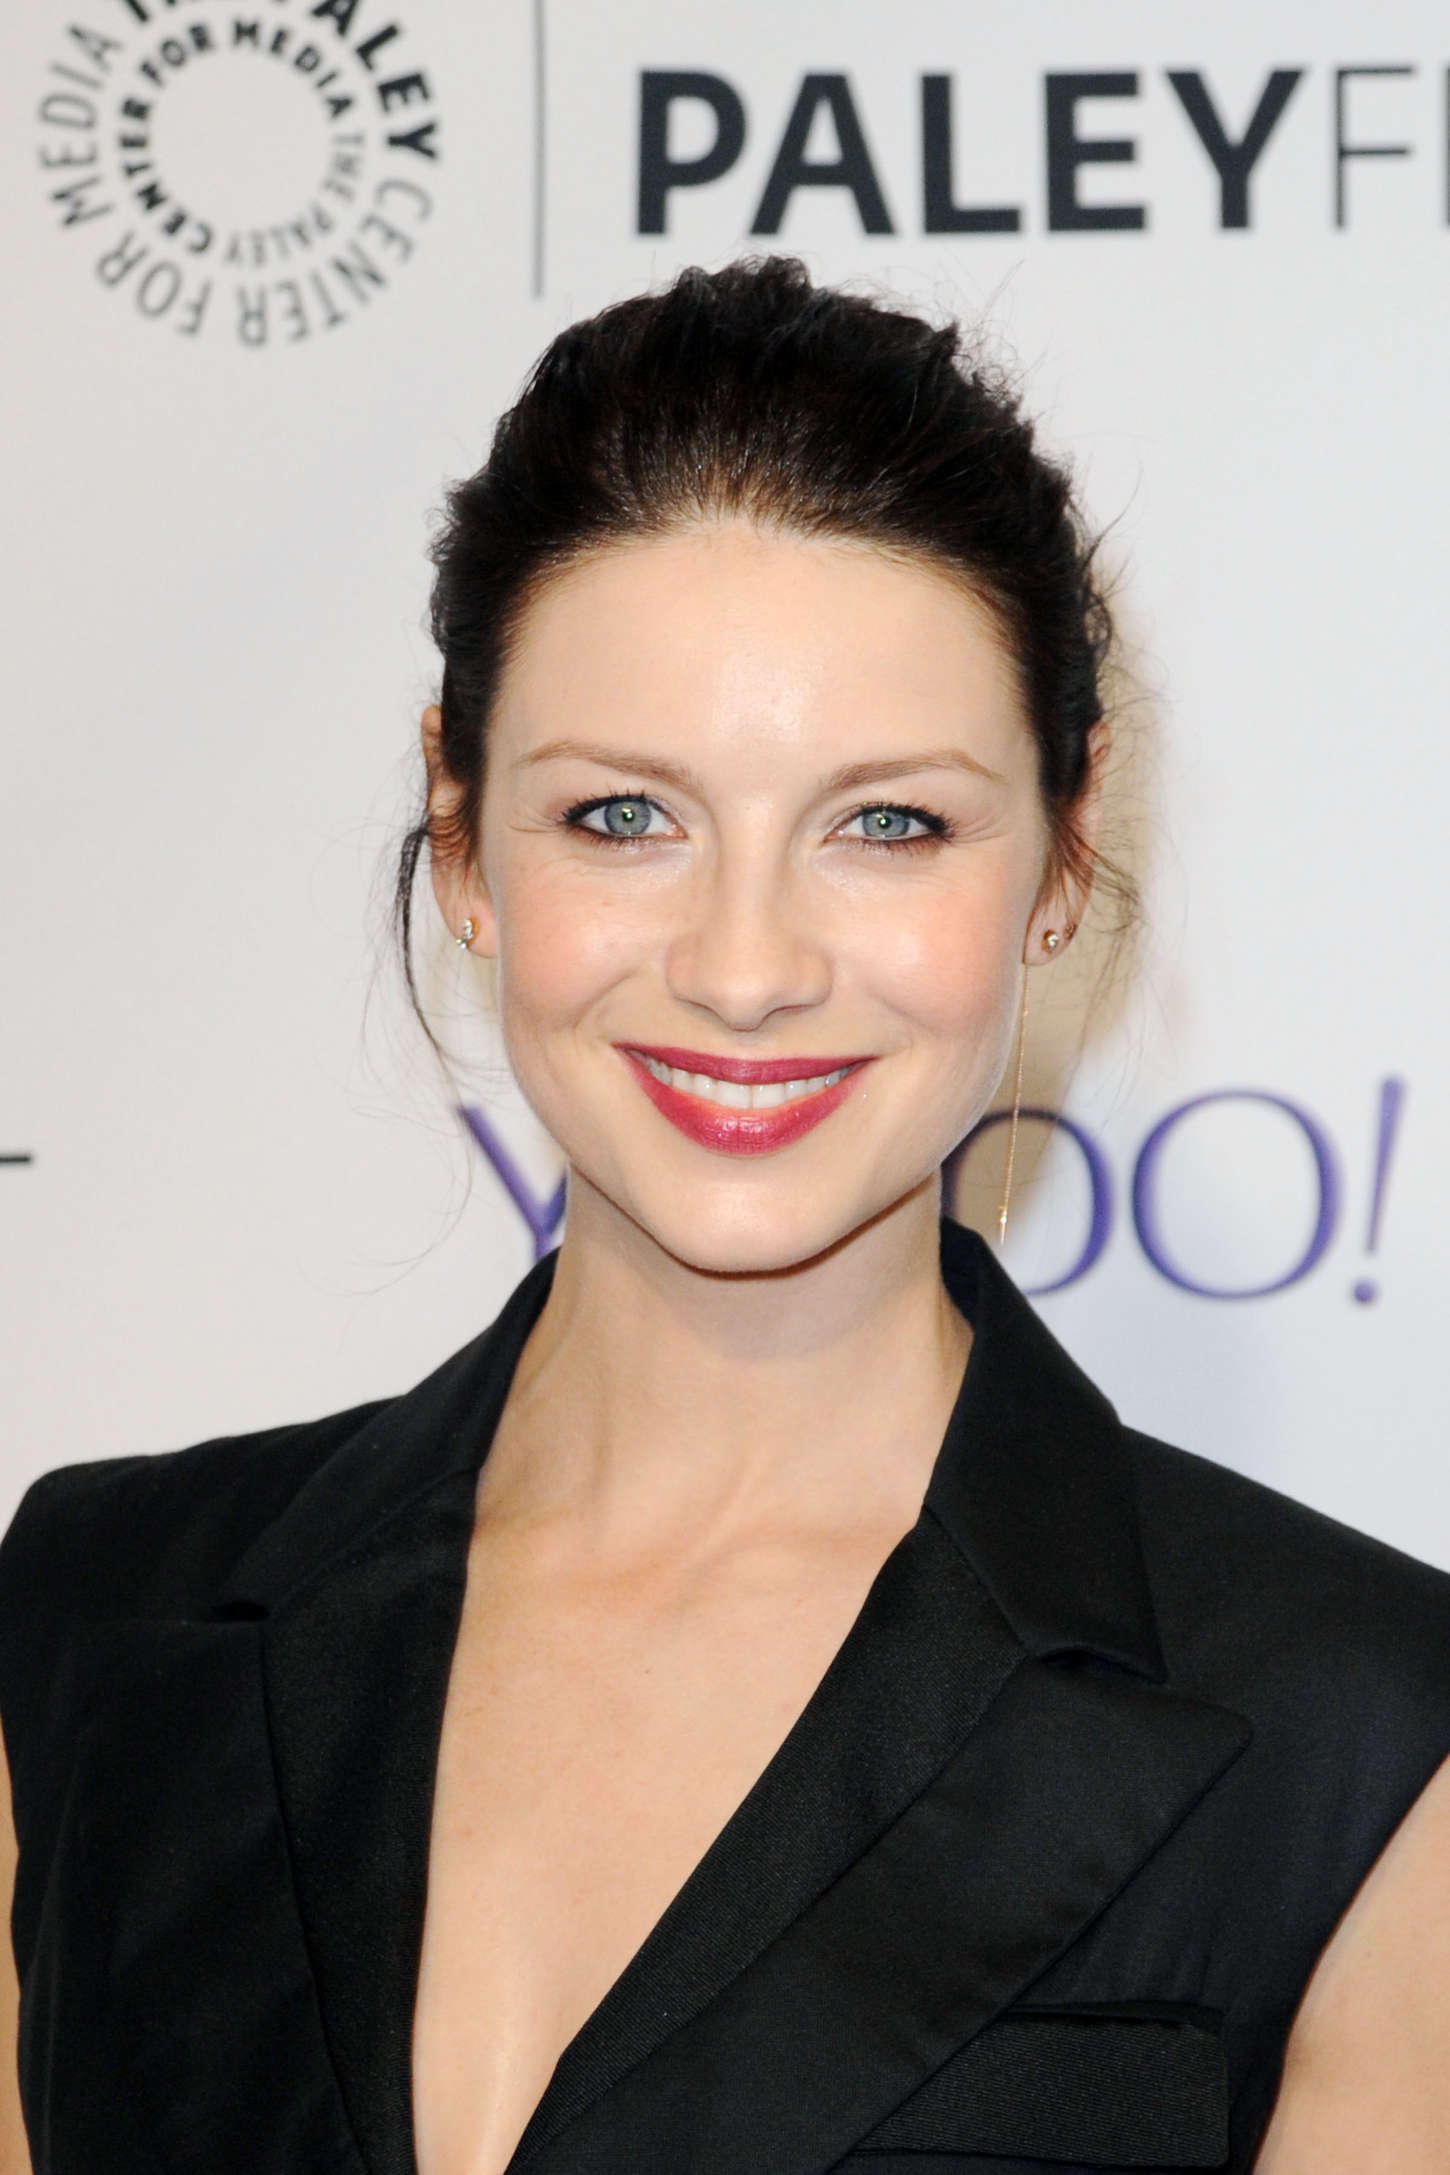 Caitriona Balfe Annual PaleyFest in Hollywood